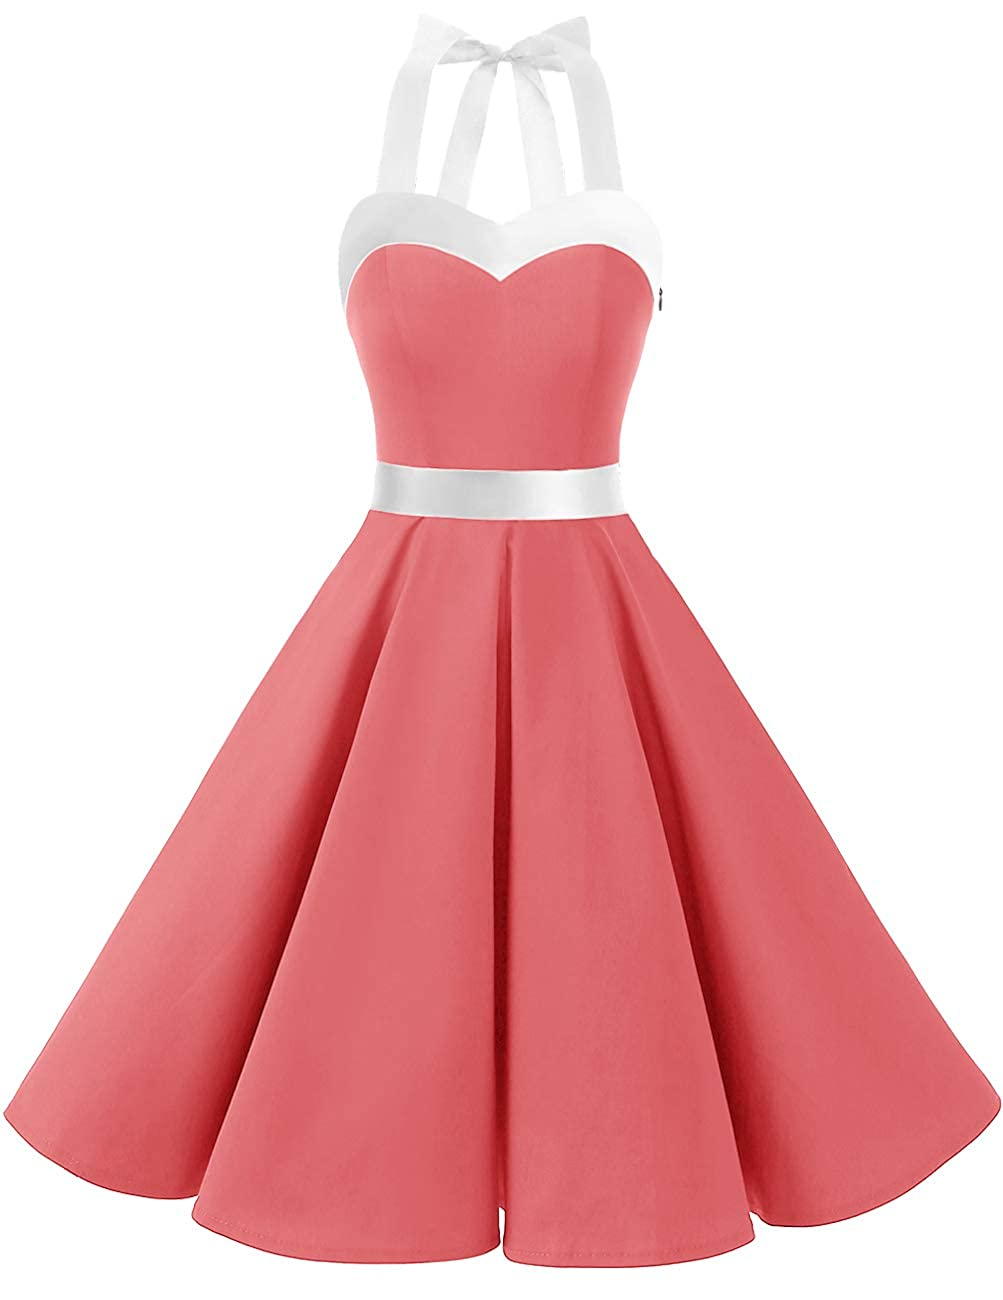 TALLA M. Dresstells® Halter 50s Rockabilly Polka Dots Audrey Dress Retro Cocktail Dress Coral White M